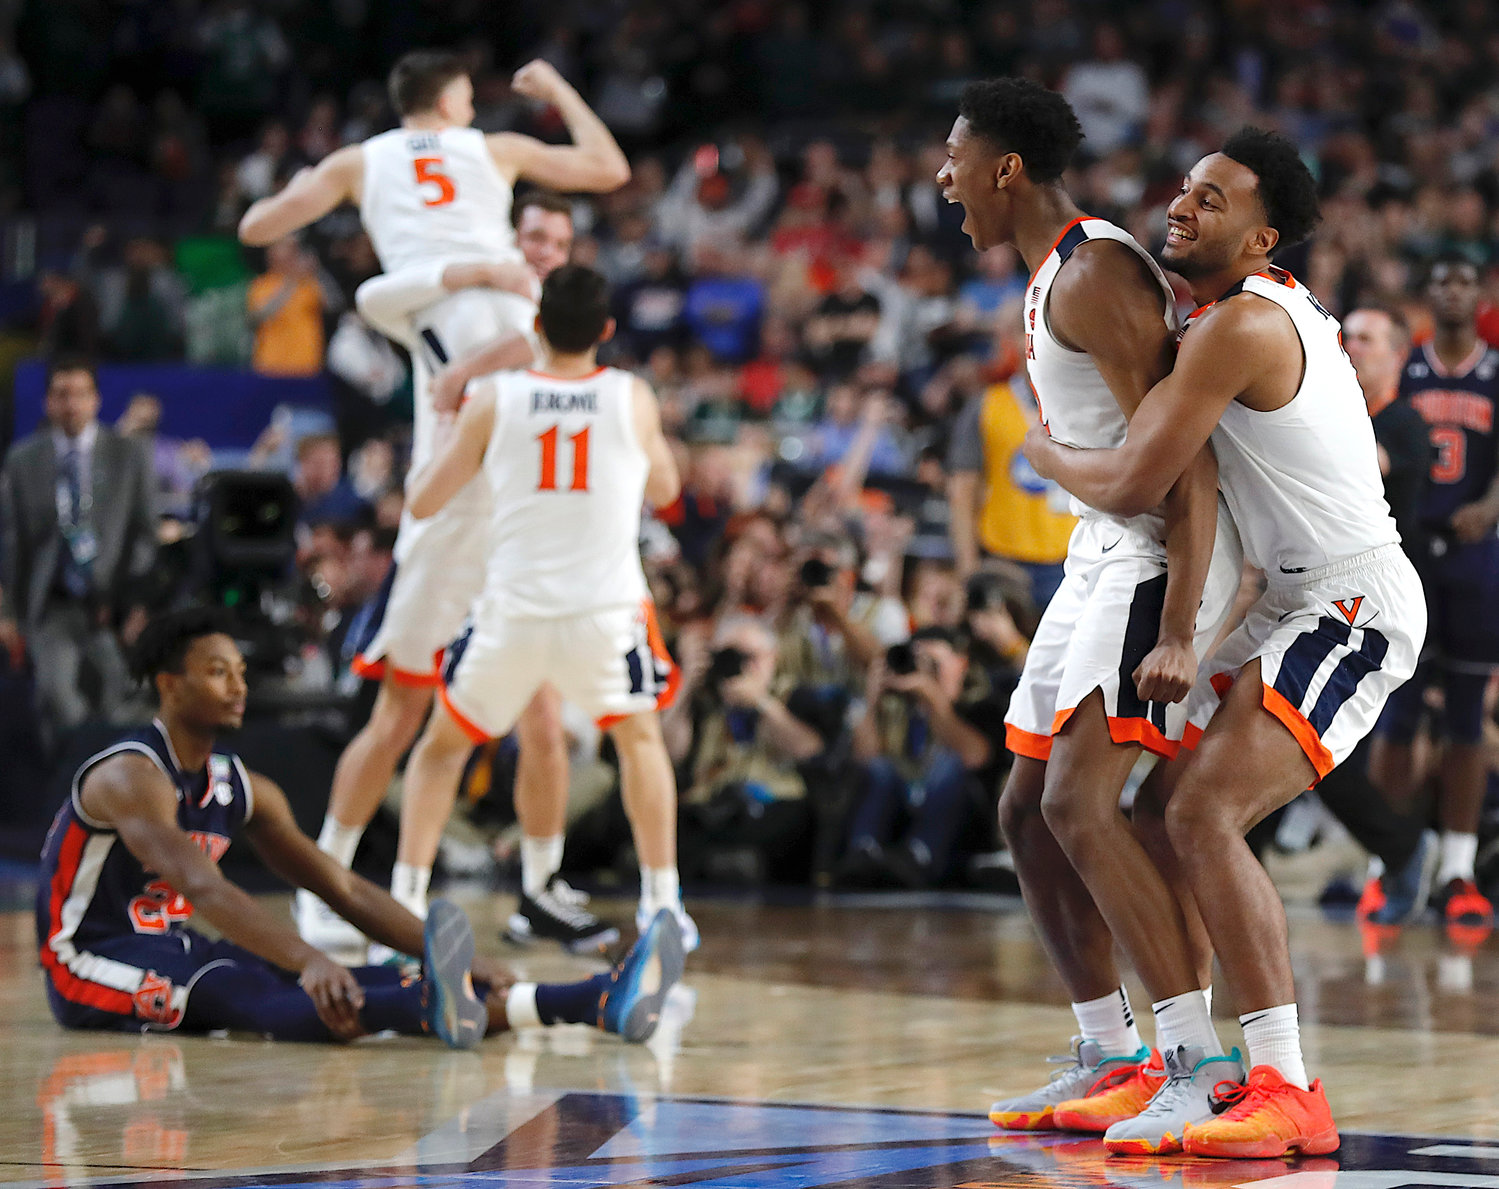 Virginia players celebrate at the end of a semifinal round game against Auburn in the Final Four NCAA college basketball tournament, Saturday, April 6, 2019, in Minneapolis.